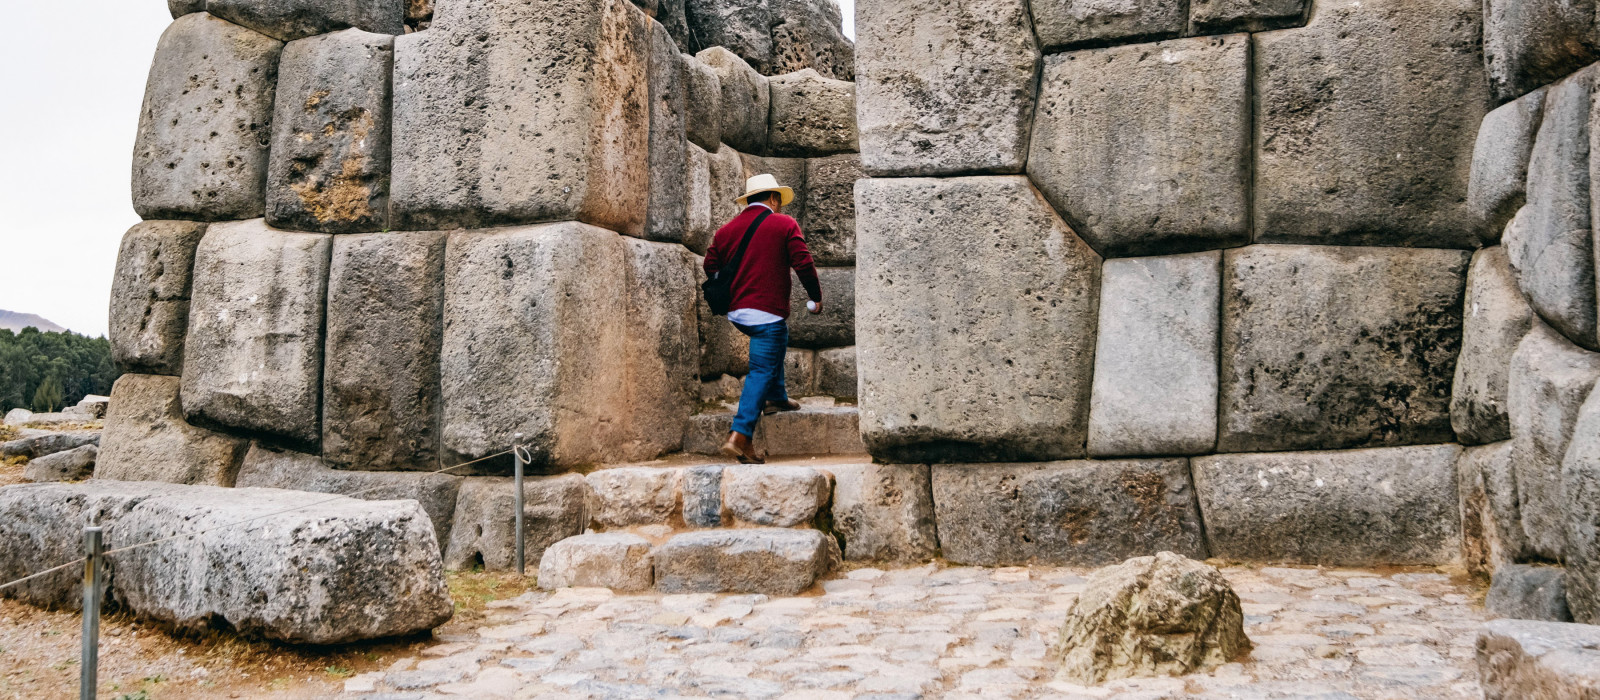 Man entering in front of the huge rocks of Sacsayhuaman in Cusco - Peru, South America